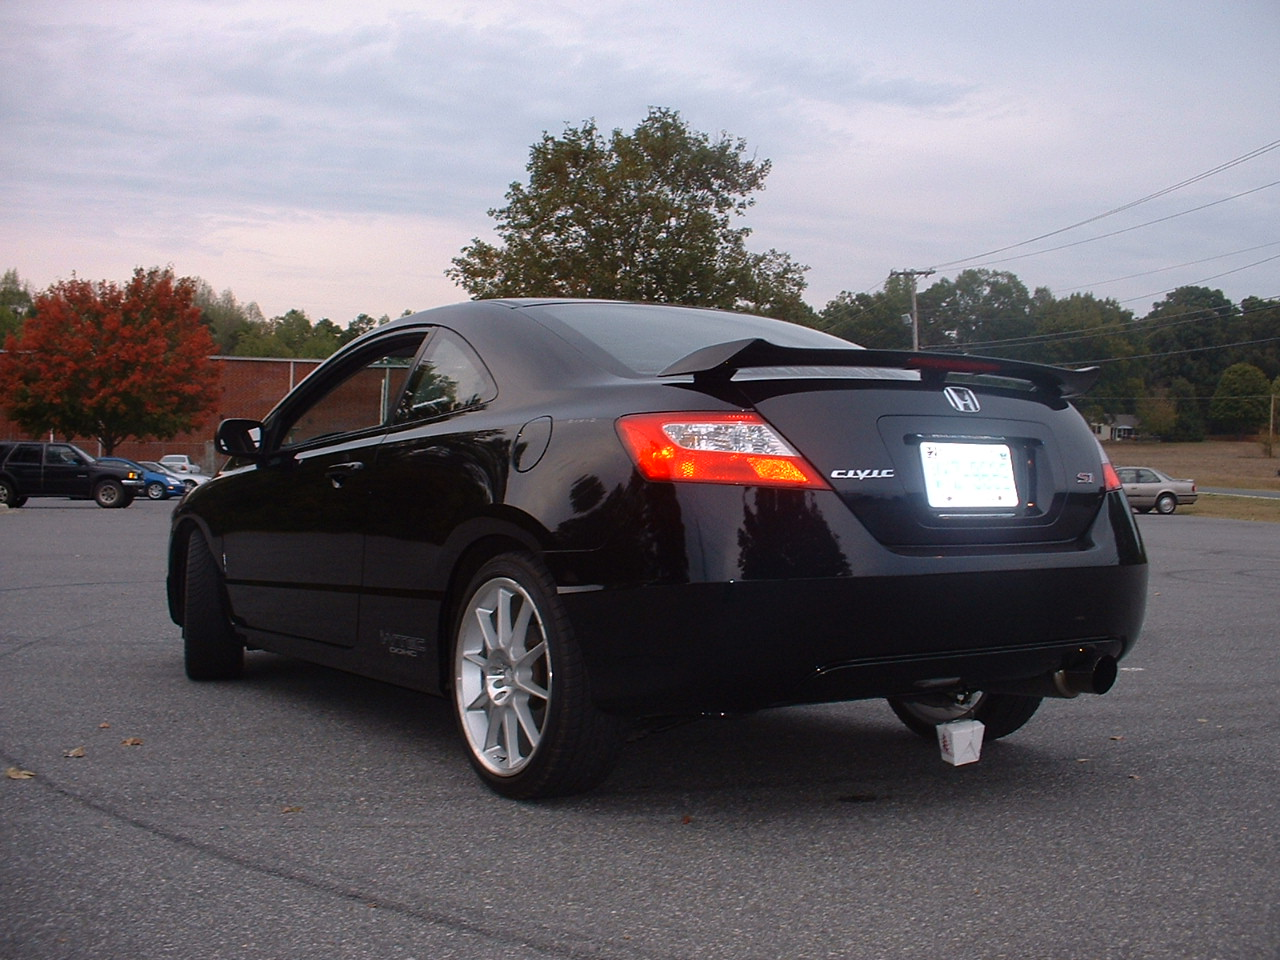 2007 Honda Civic #20 Honda Civic #20